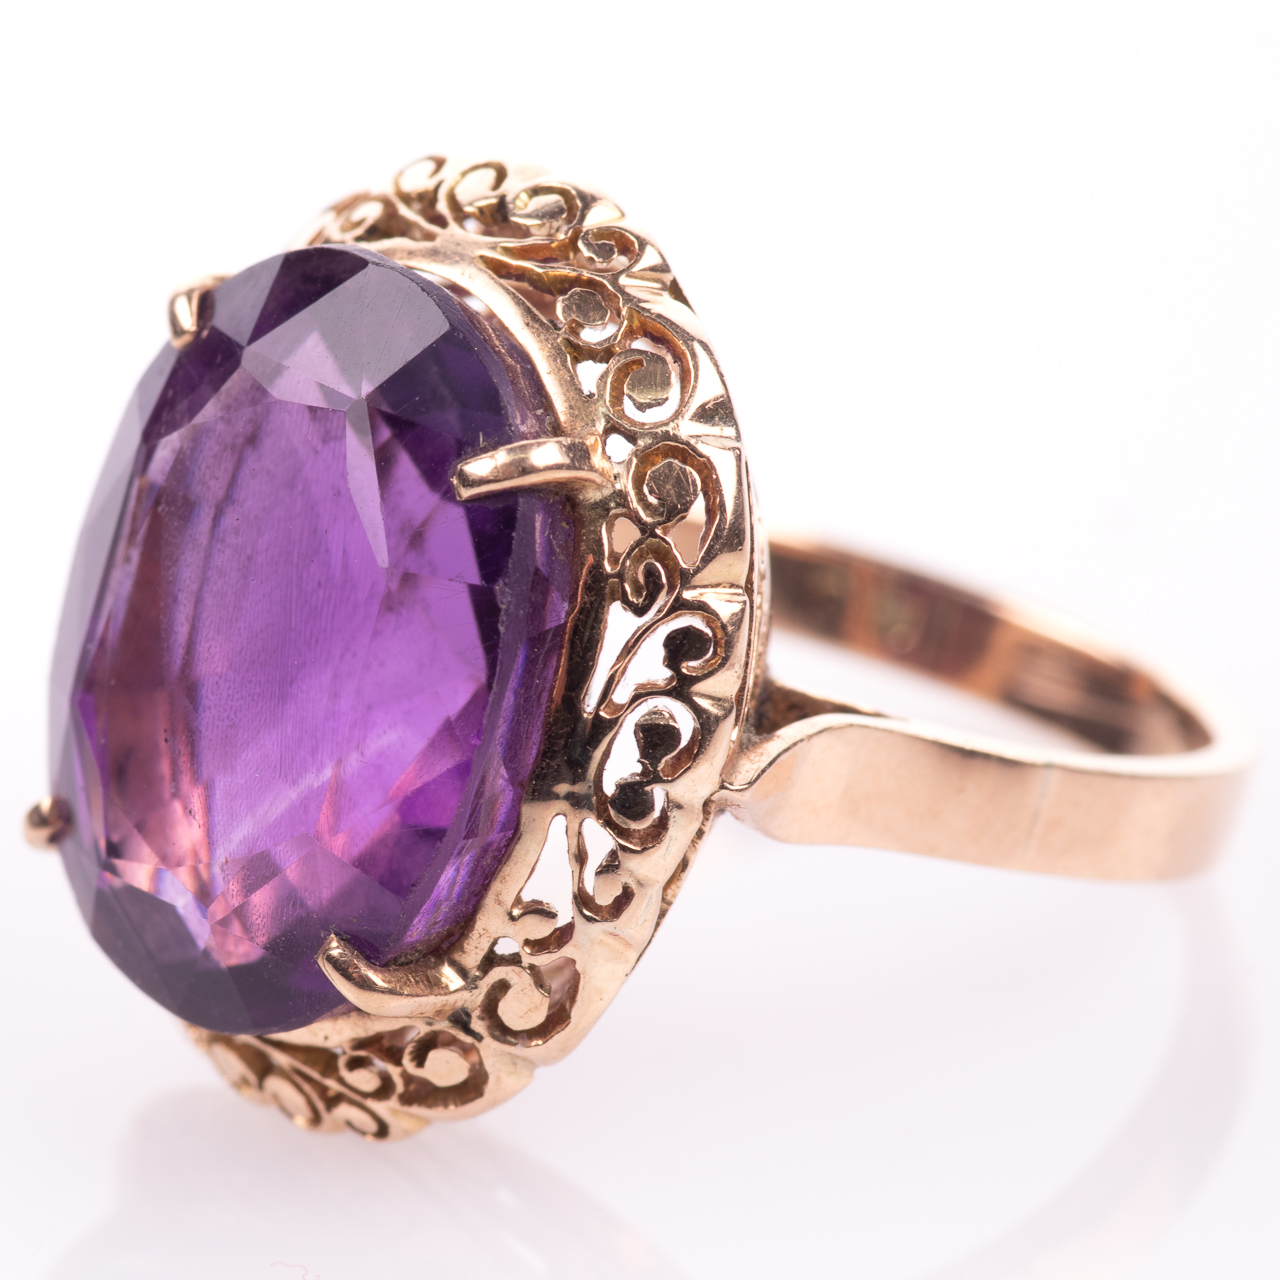 14ct Gold Amethyst Ring - Image 4 of 7